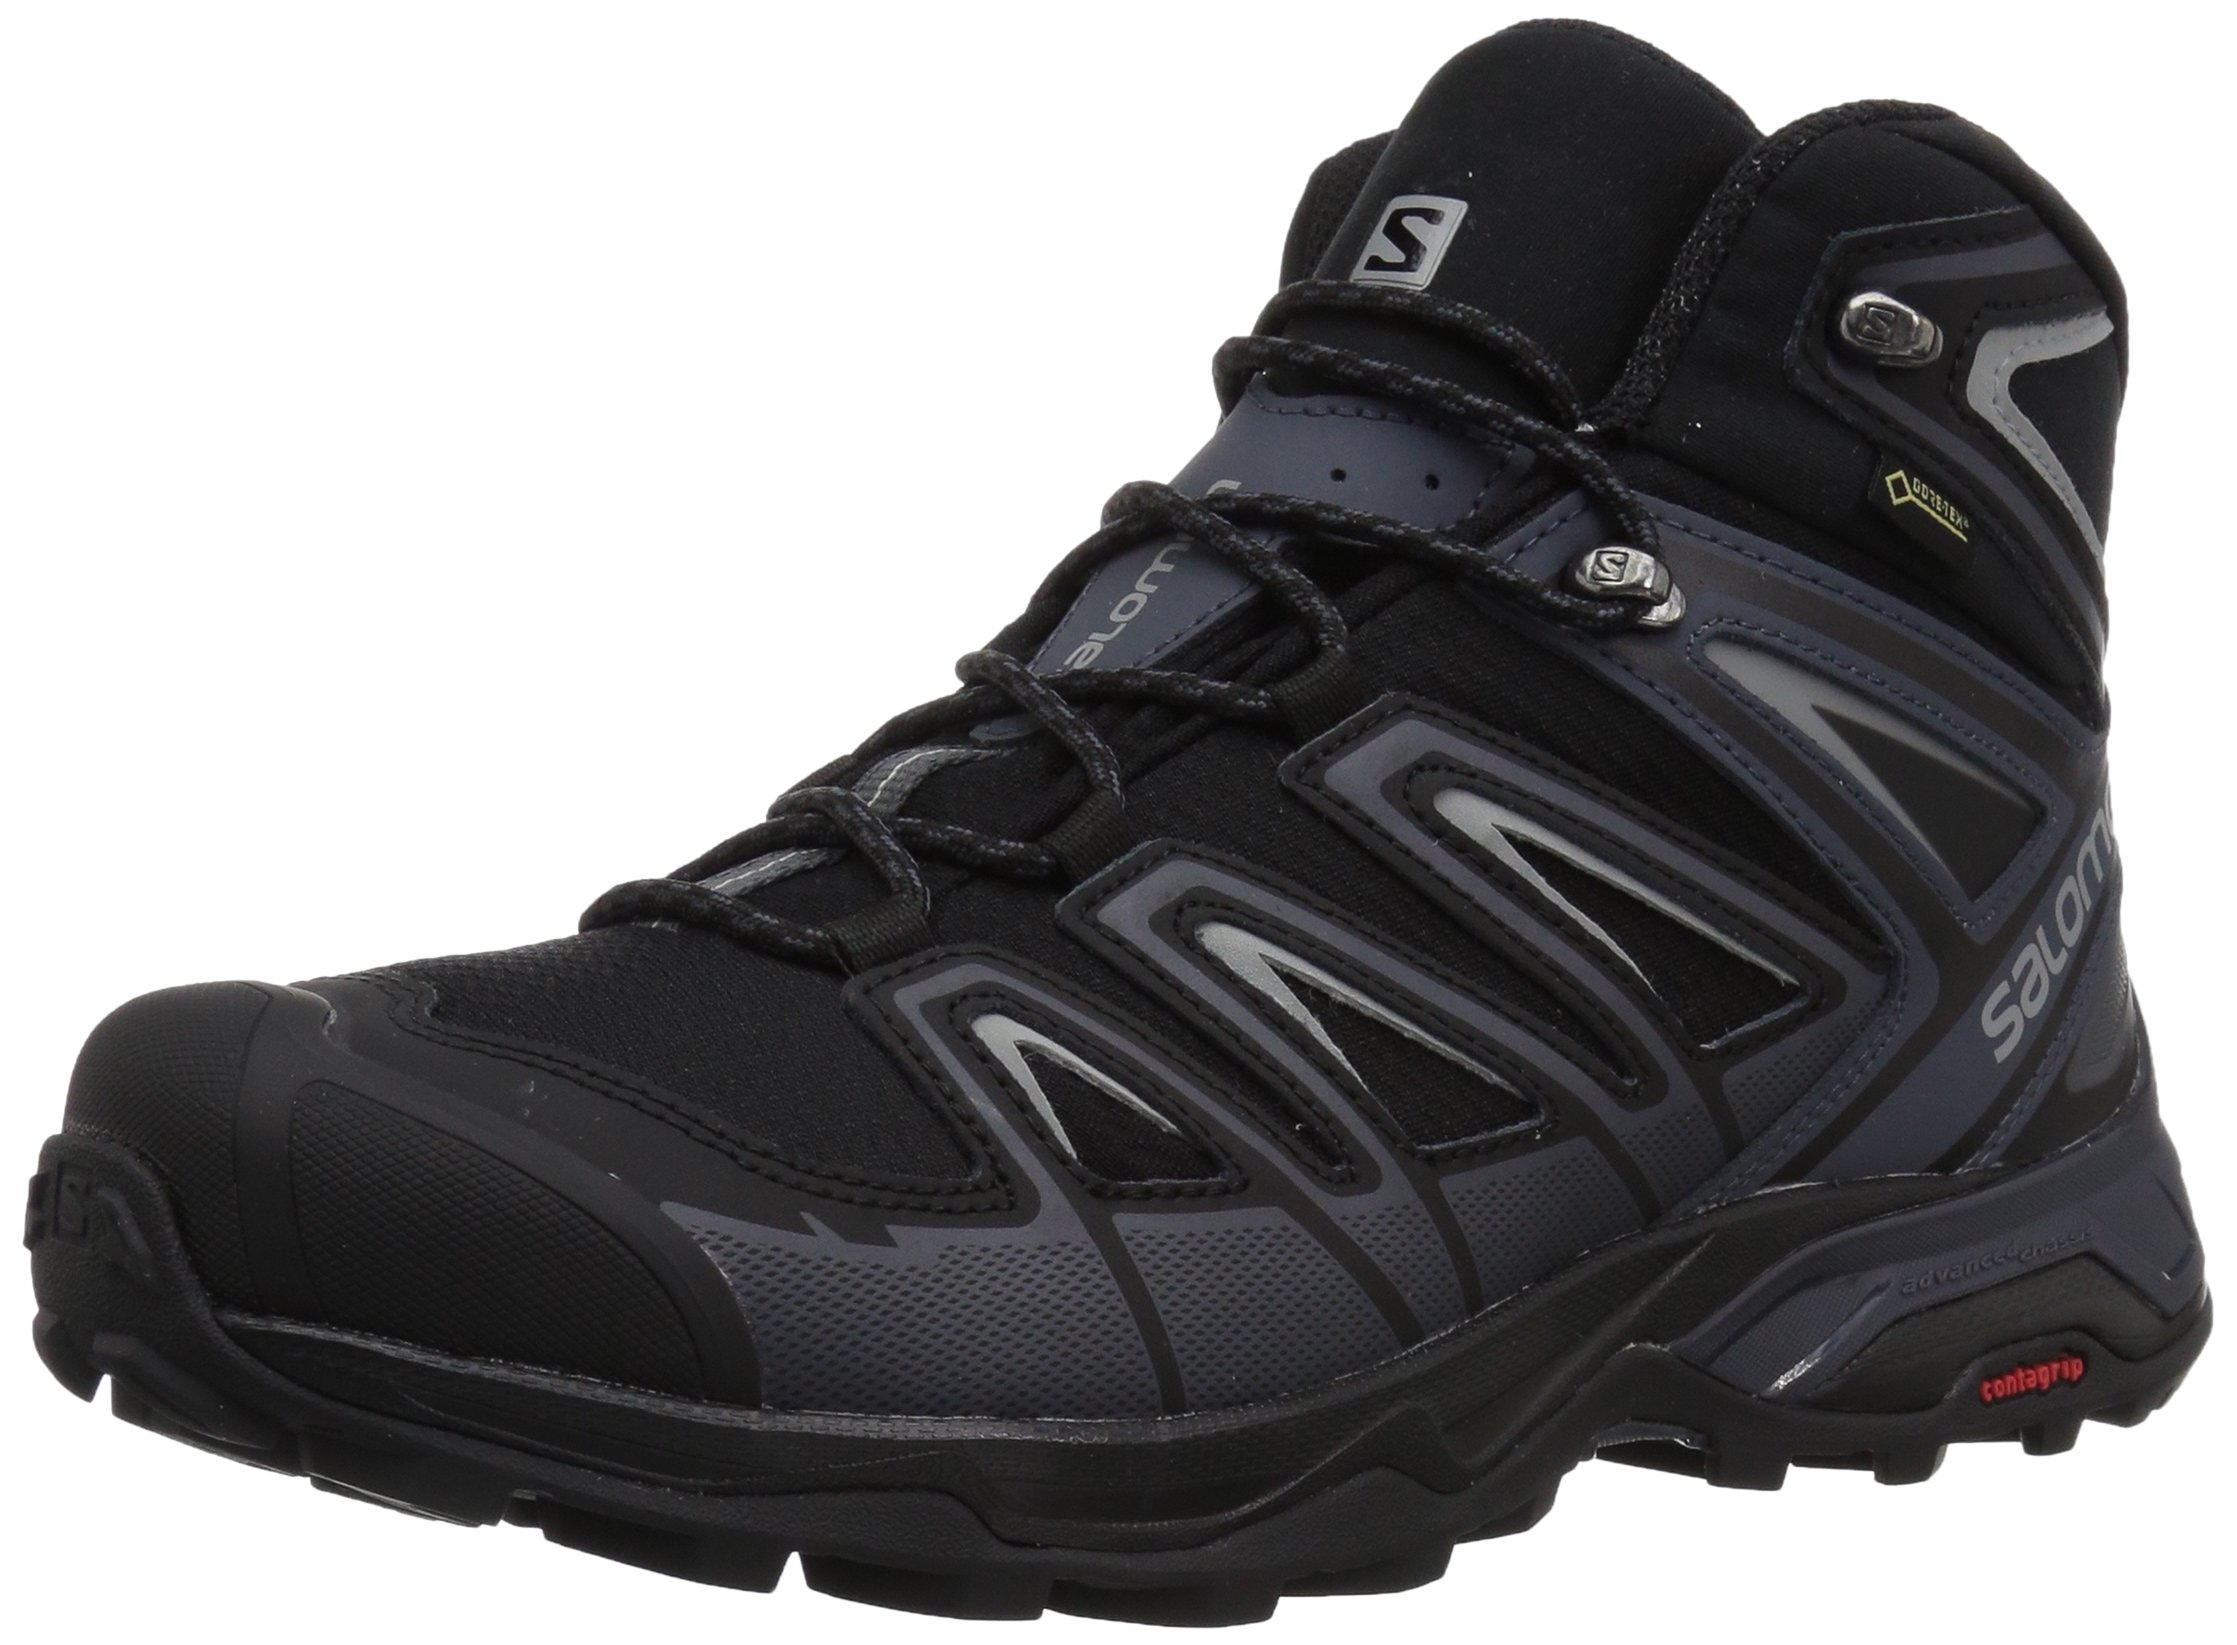 Salomon Men's X Ultra 3 Wide Mid GTX Hiking Boot, Black, 10.5 M US